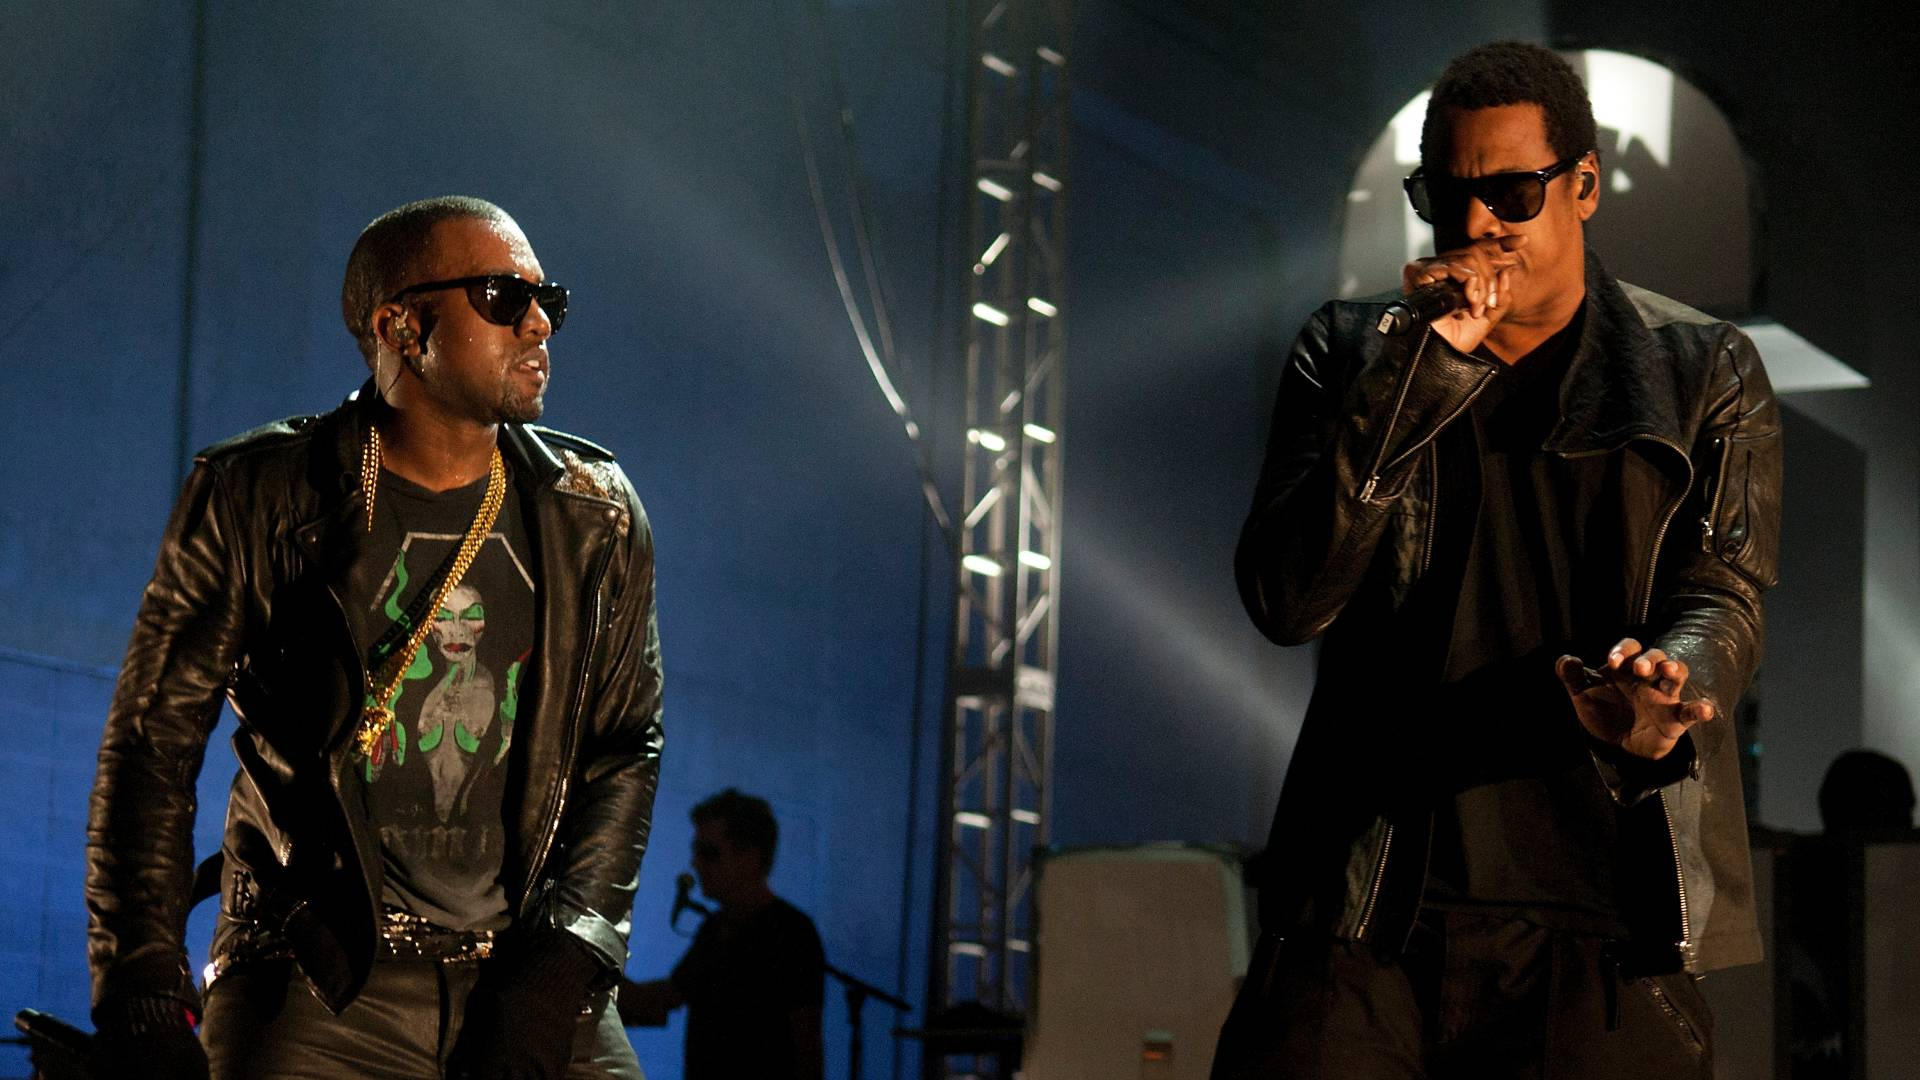 Os rappers Kanye West e Jay-Z durante apresentao em Austin, no Texas (19/03/2011)